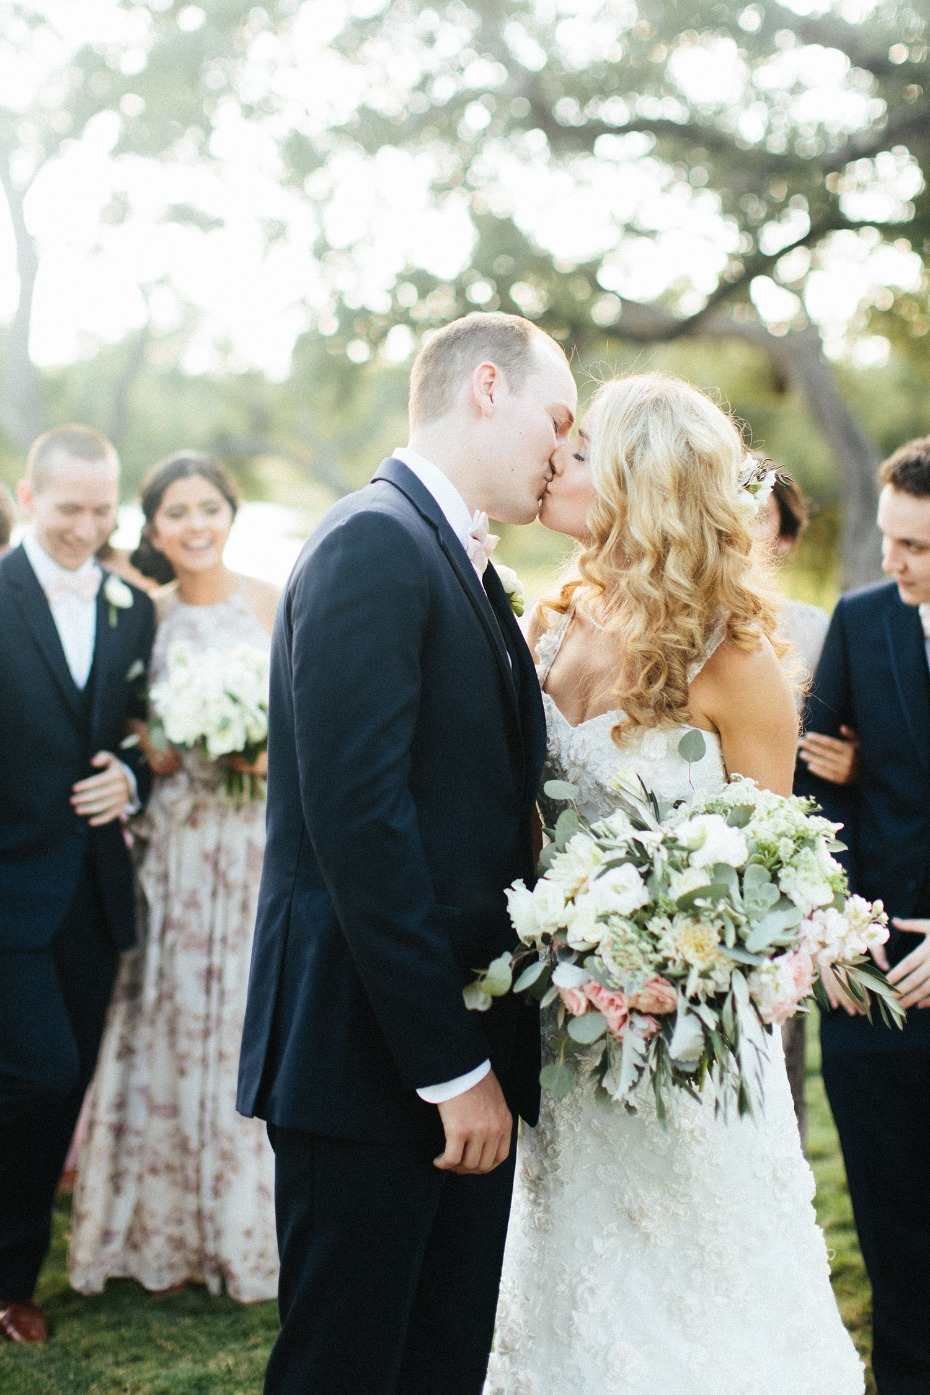 Love this garden floral wedding